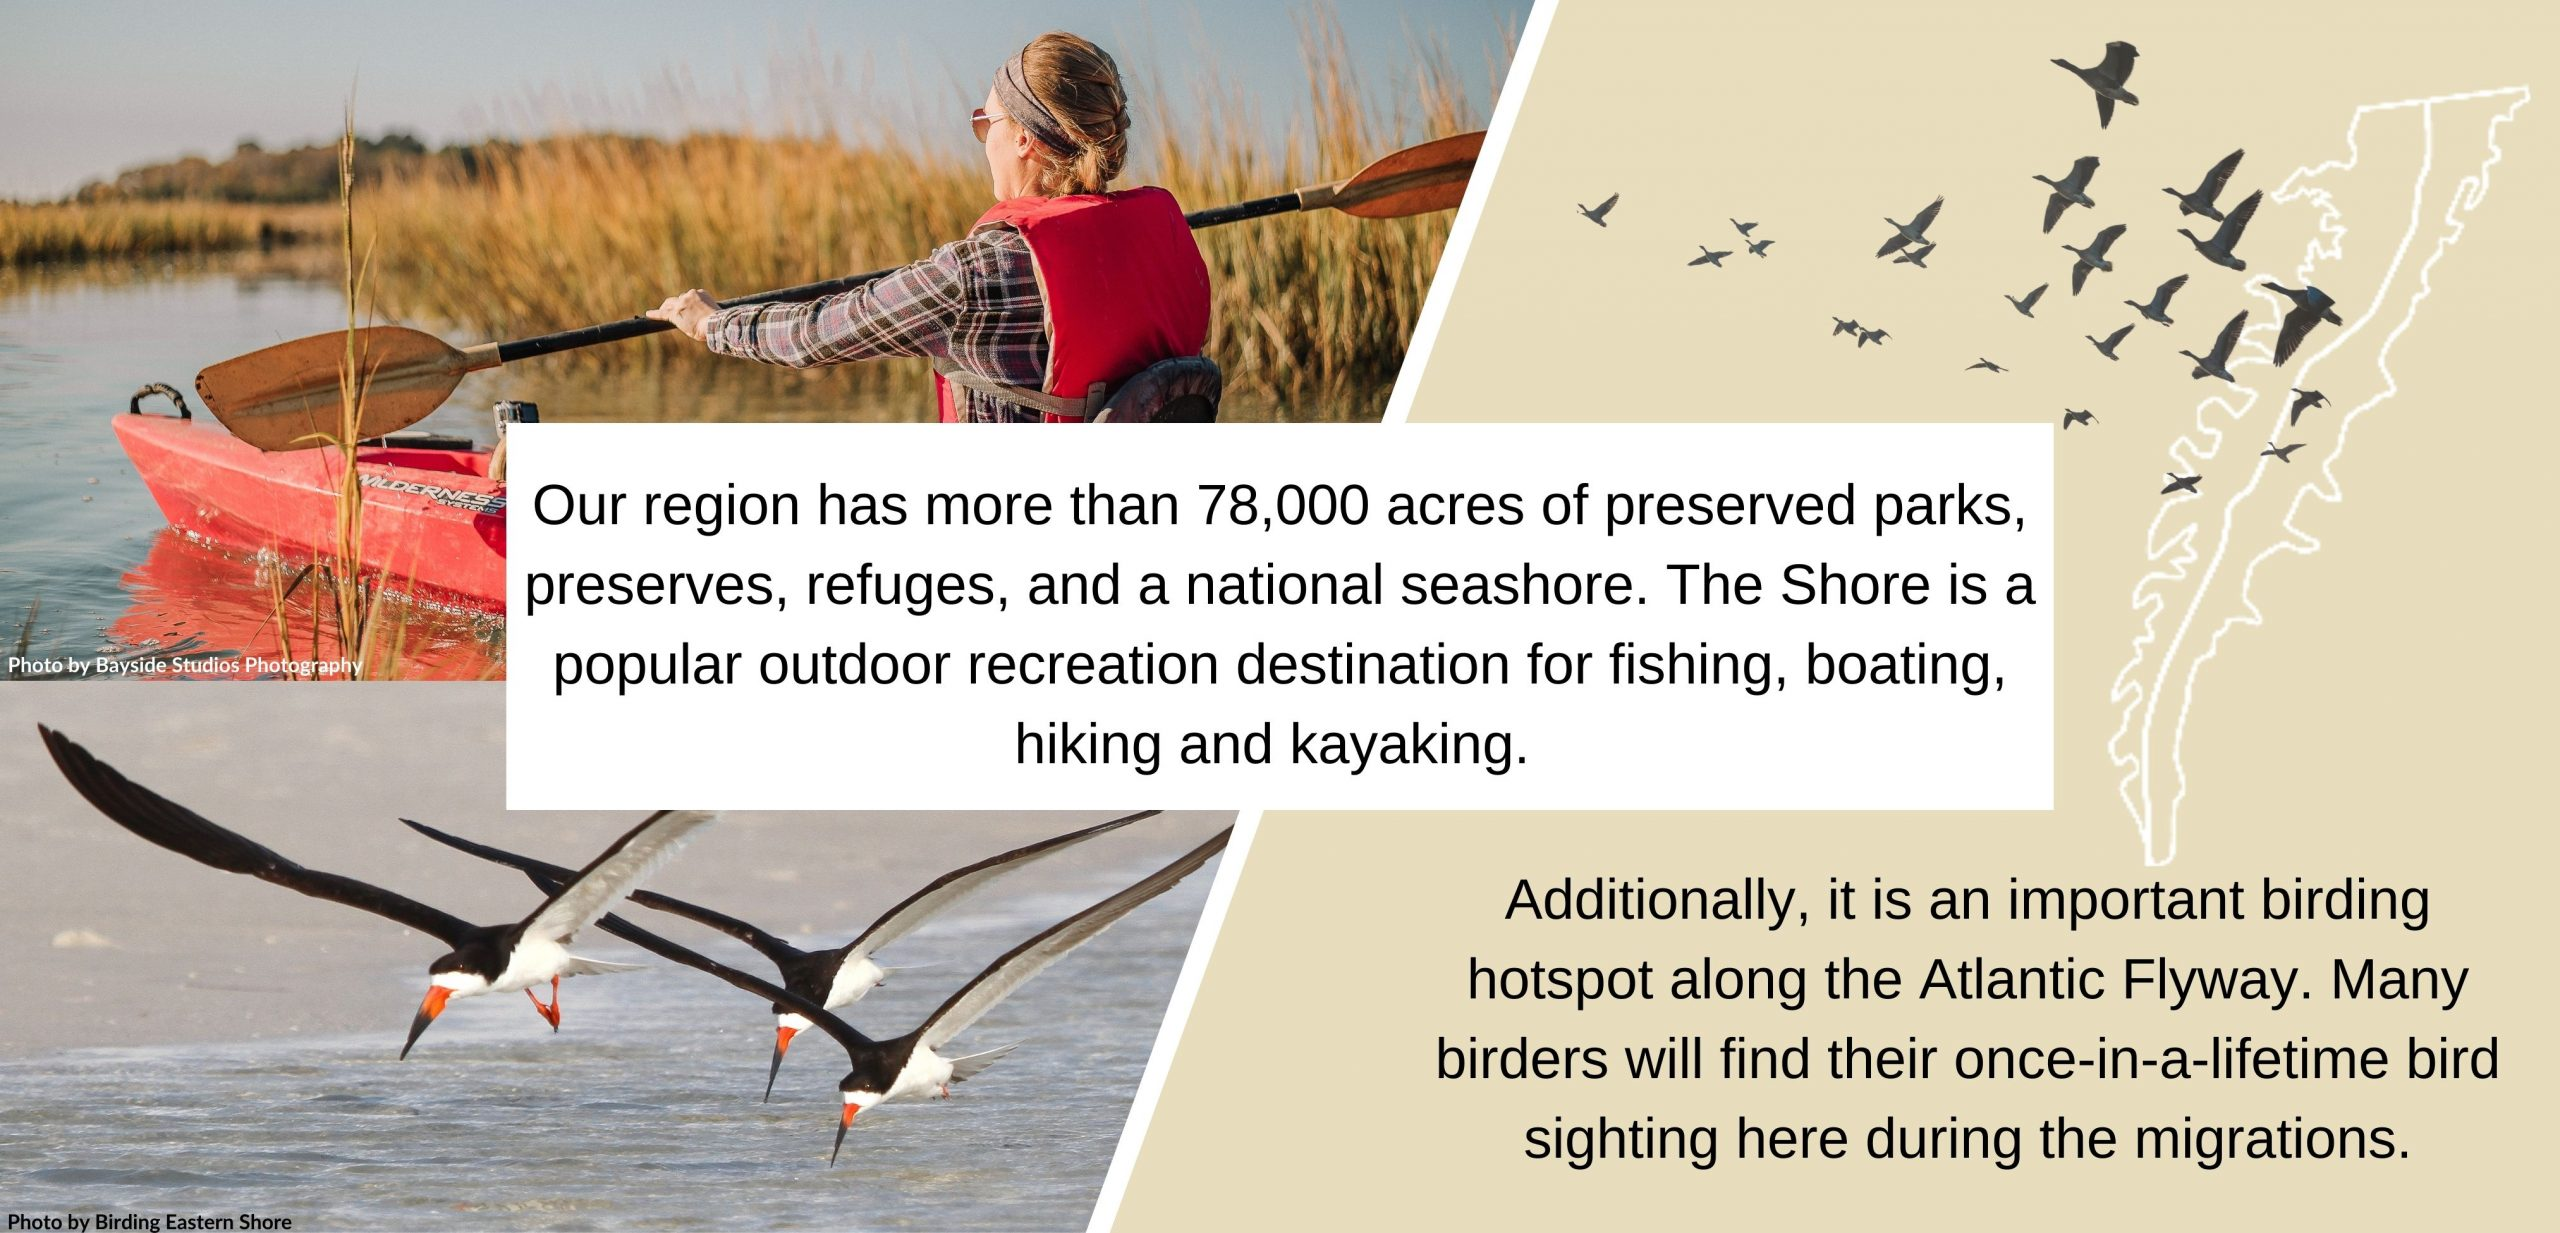 Our region has more than 78,000 acres of preserved parks, preserves, refuges, and a national seashore. The Shore is a popular outdoor recreation destination for fishing, boating, hiking and kayaking. Additionally, it is an important birding hotspot along the Atlantic Flyway. Many birders will find their once-in-a-lifetime bird sighting here during the migrations.